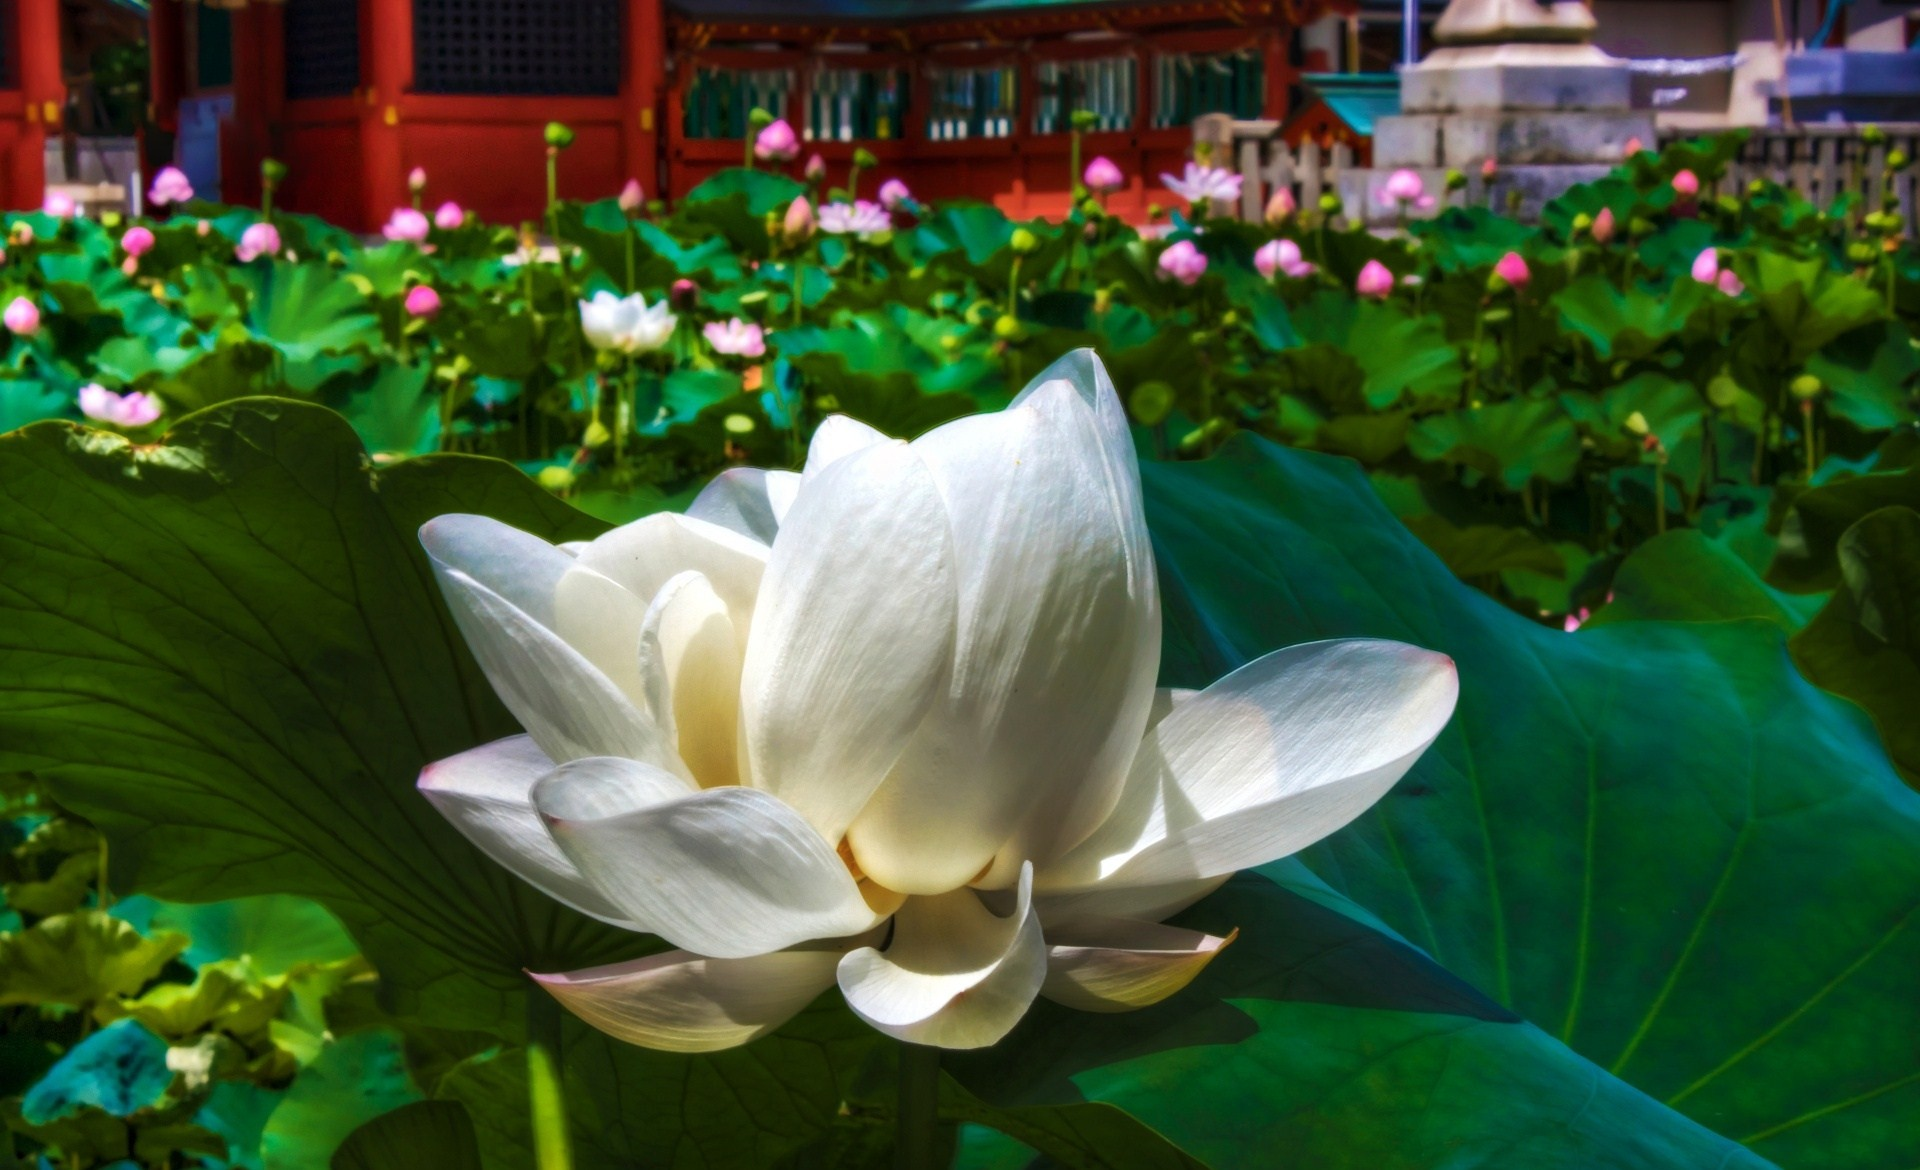 White Lotus Flowers Nature Wallpaper Flower Free Download - Super Extended Graphics Array , HD Wallpaper & Backgrounds